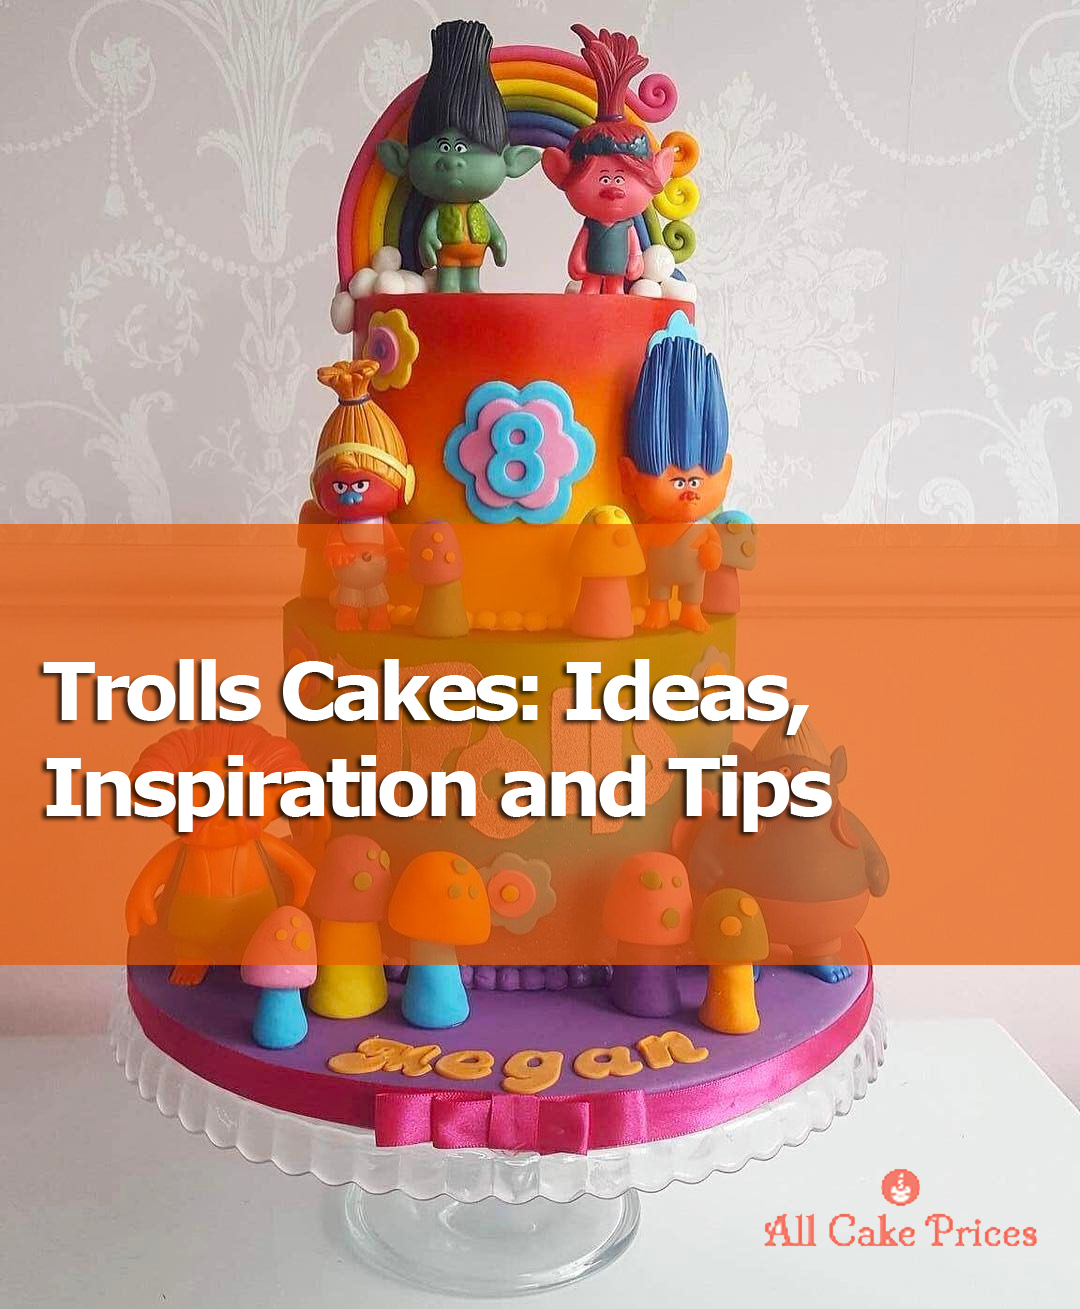 Awesome How To Make A Trolls Cake Ideas Inspiration And Tips For Busy Personalised Birthday Cards Veneteletsinfo